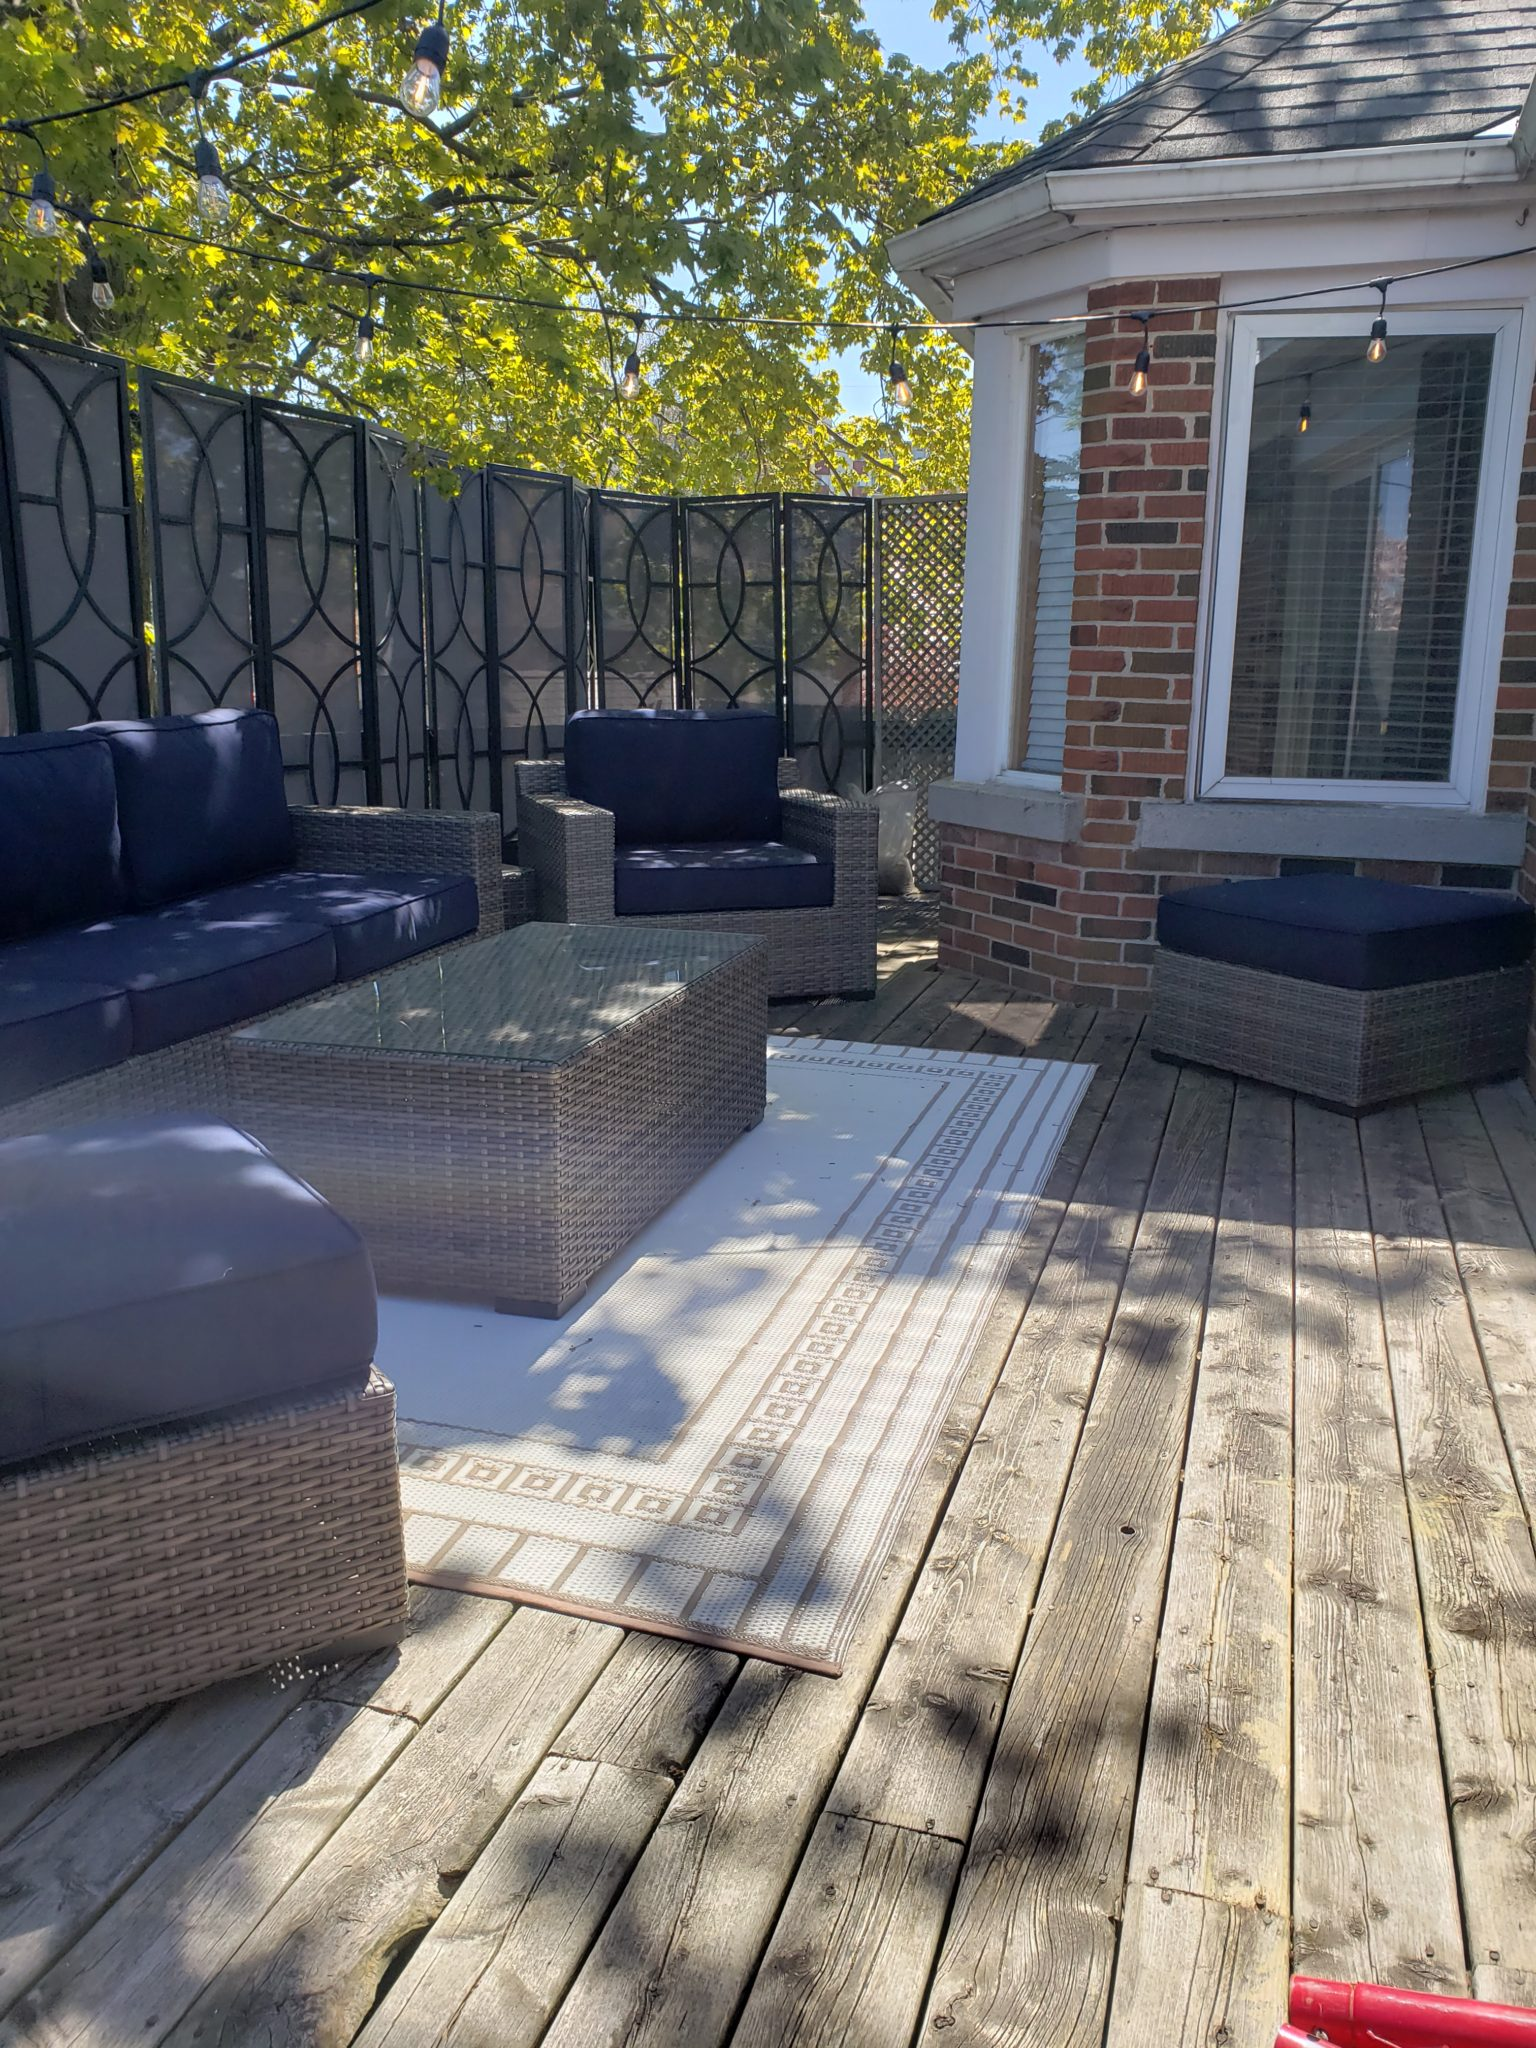 Patio furniture - After